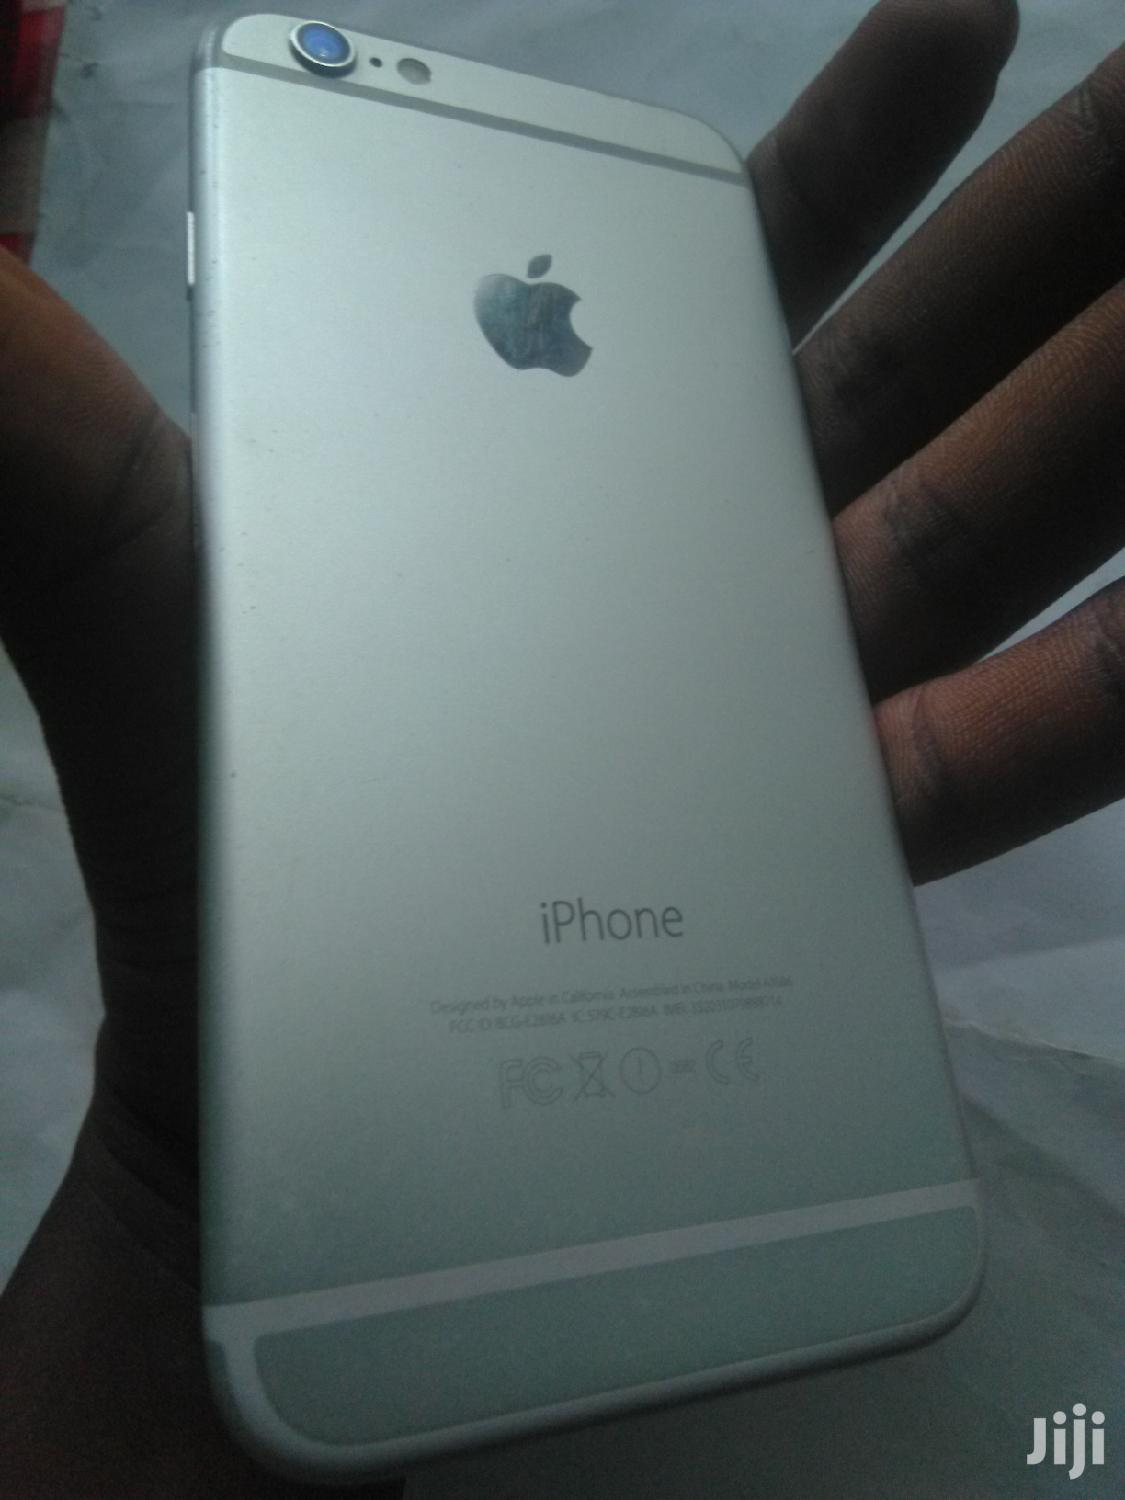 Apple iPhone 6 16 GB Silver | Mobile Phones for sale in Kampala, Central Region, Uganda